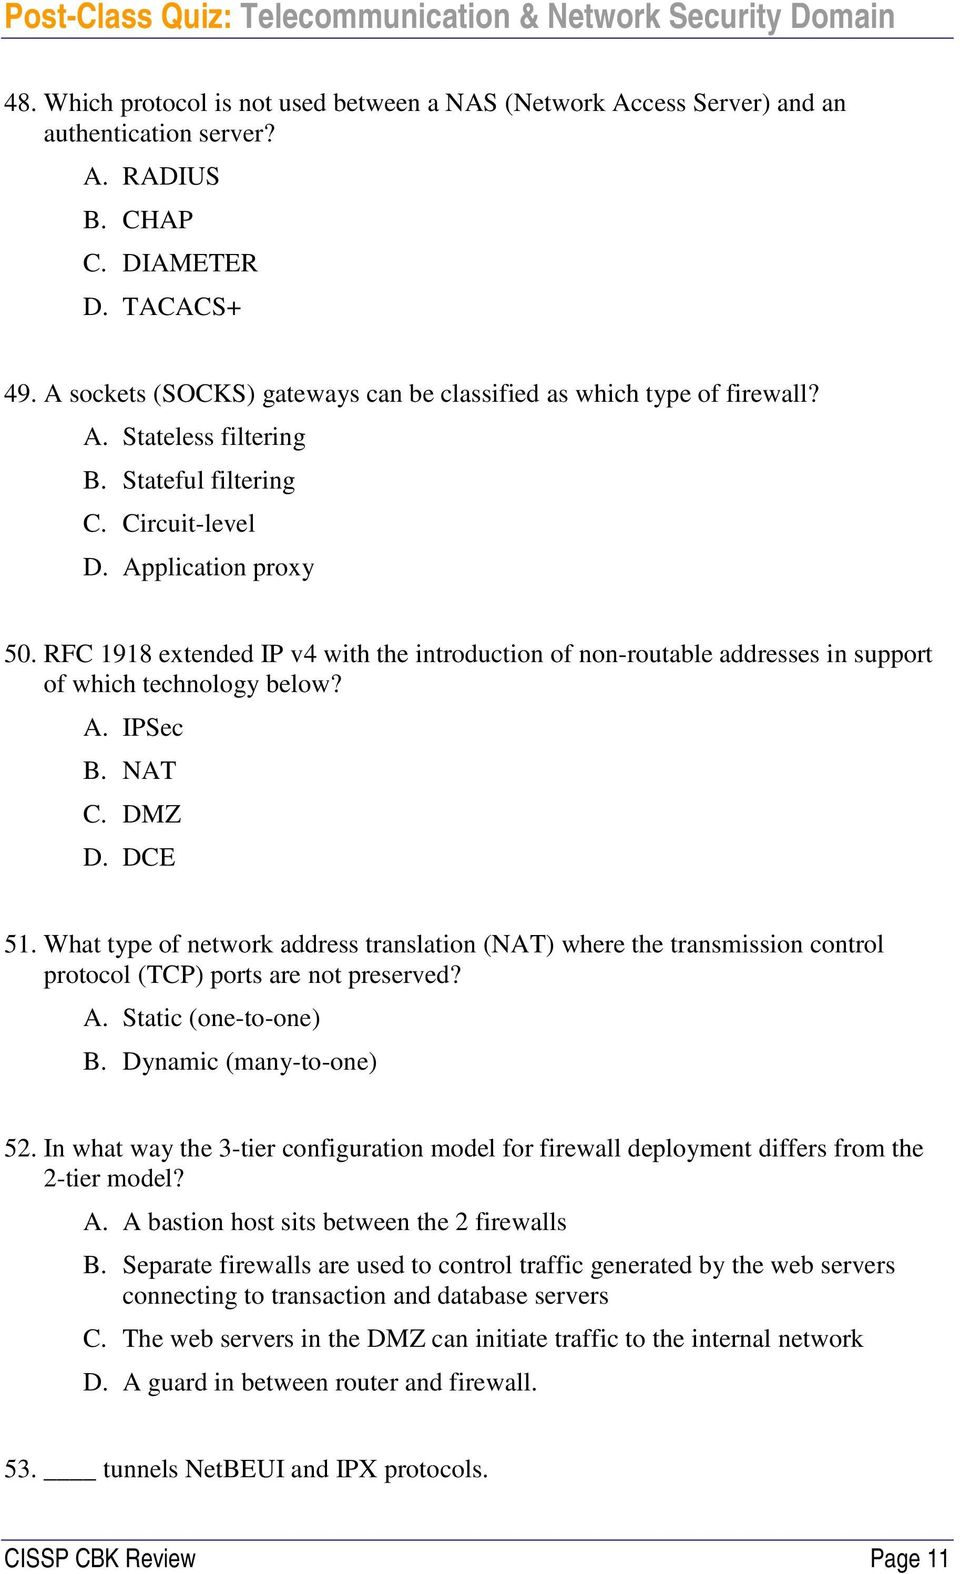 RFC 1918 extended IP v4 with the introduction of non-routable addresses in support of which technology below? A. IPSec B. NAT C. DMZ D. DCE 51.